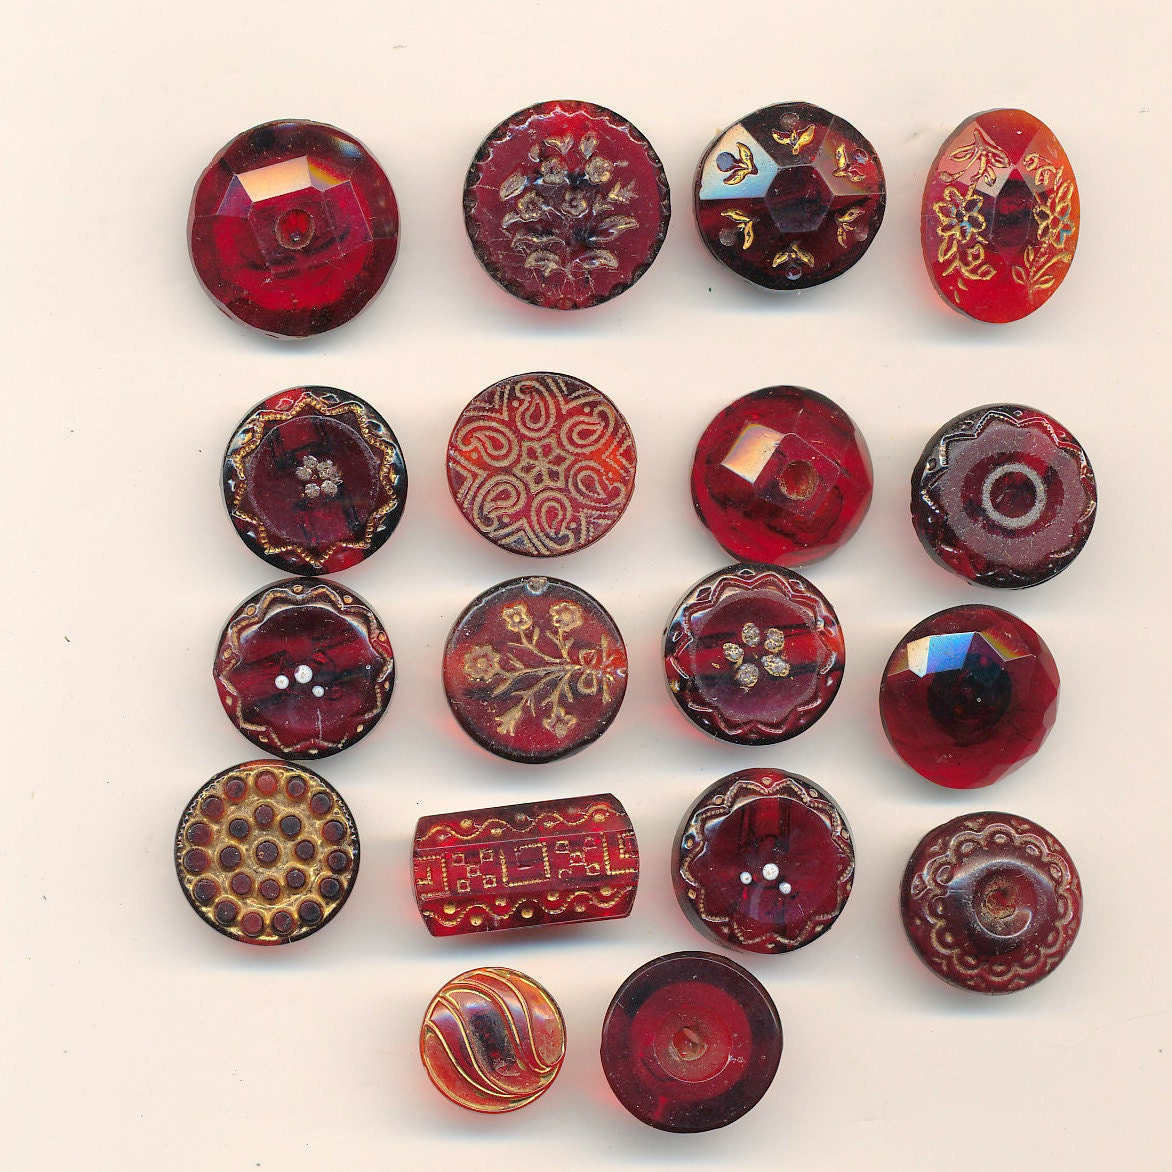 18 Antique Ruby Red Glass Buttons ca. 1870's